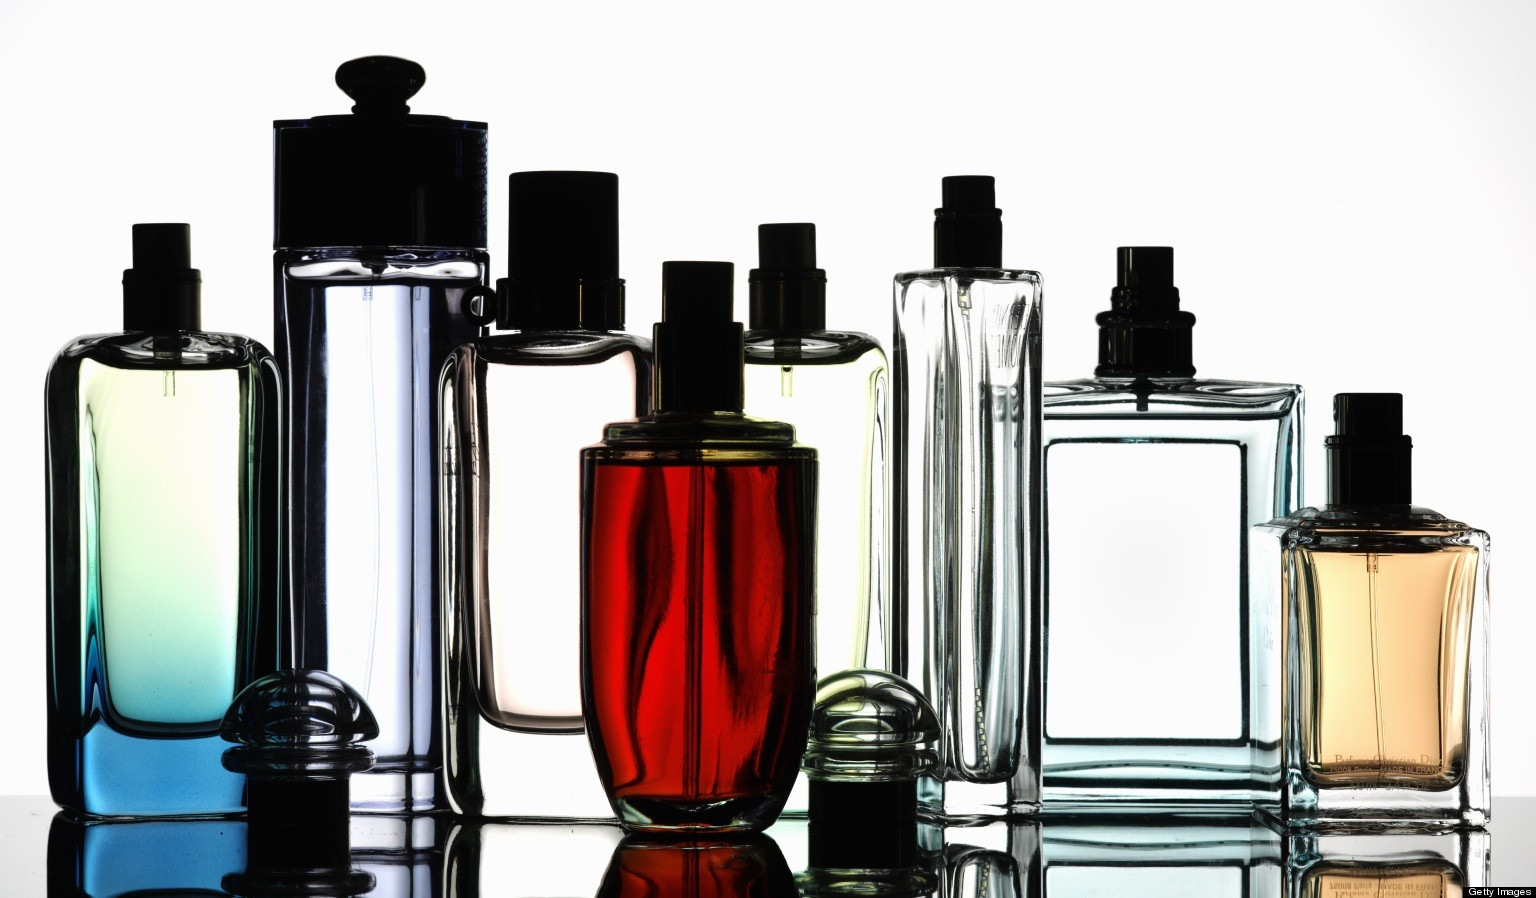 What is better, deodorants or perfumes? Which has more advantages? - Quora